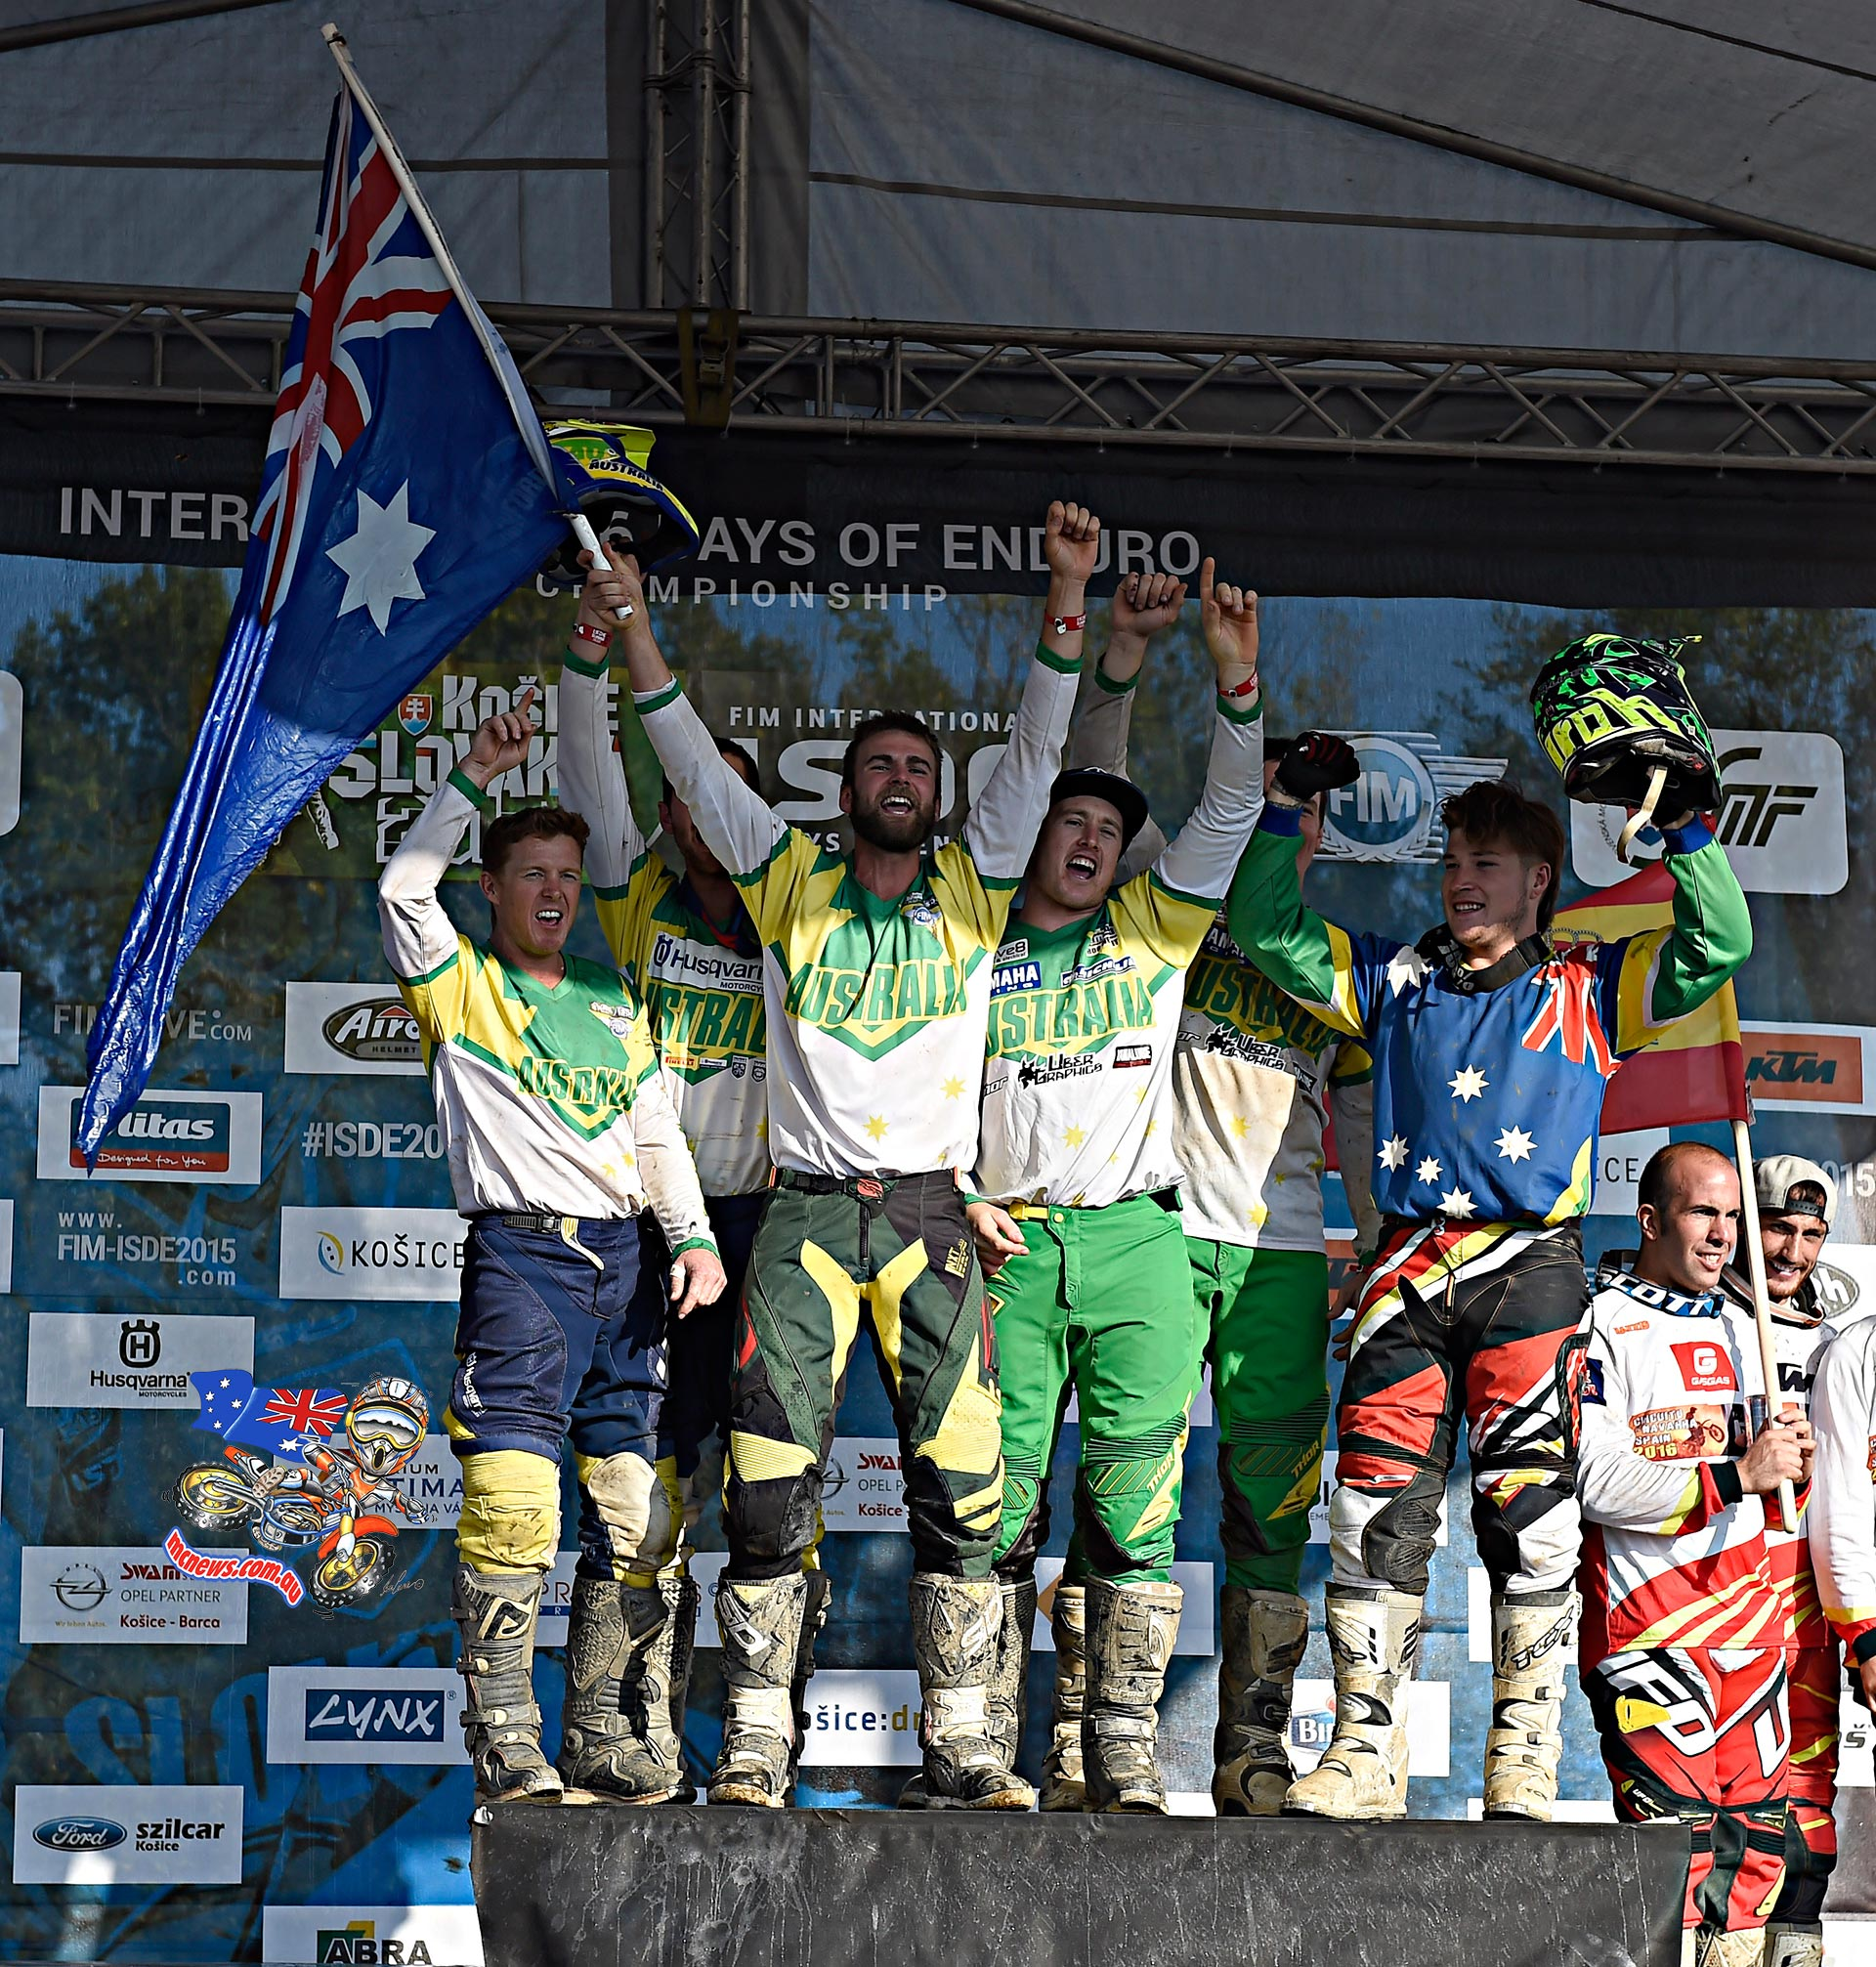 Australia climbed to the top step of the podium and chanting Aussie-Aussie-Aussie, as Spain looked on and France were yet to mount the podium to claim the top spot on the rostrum.